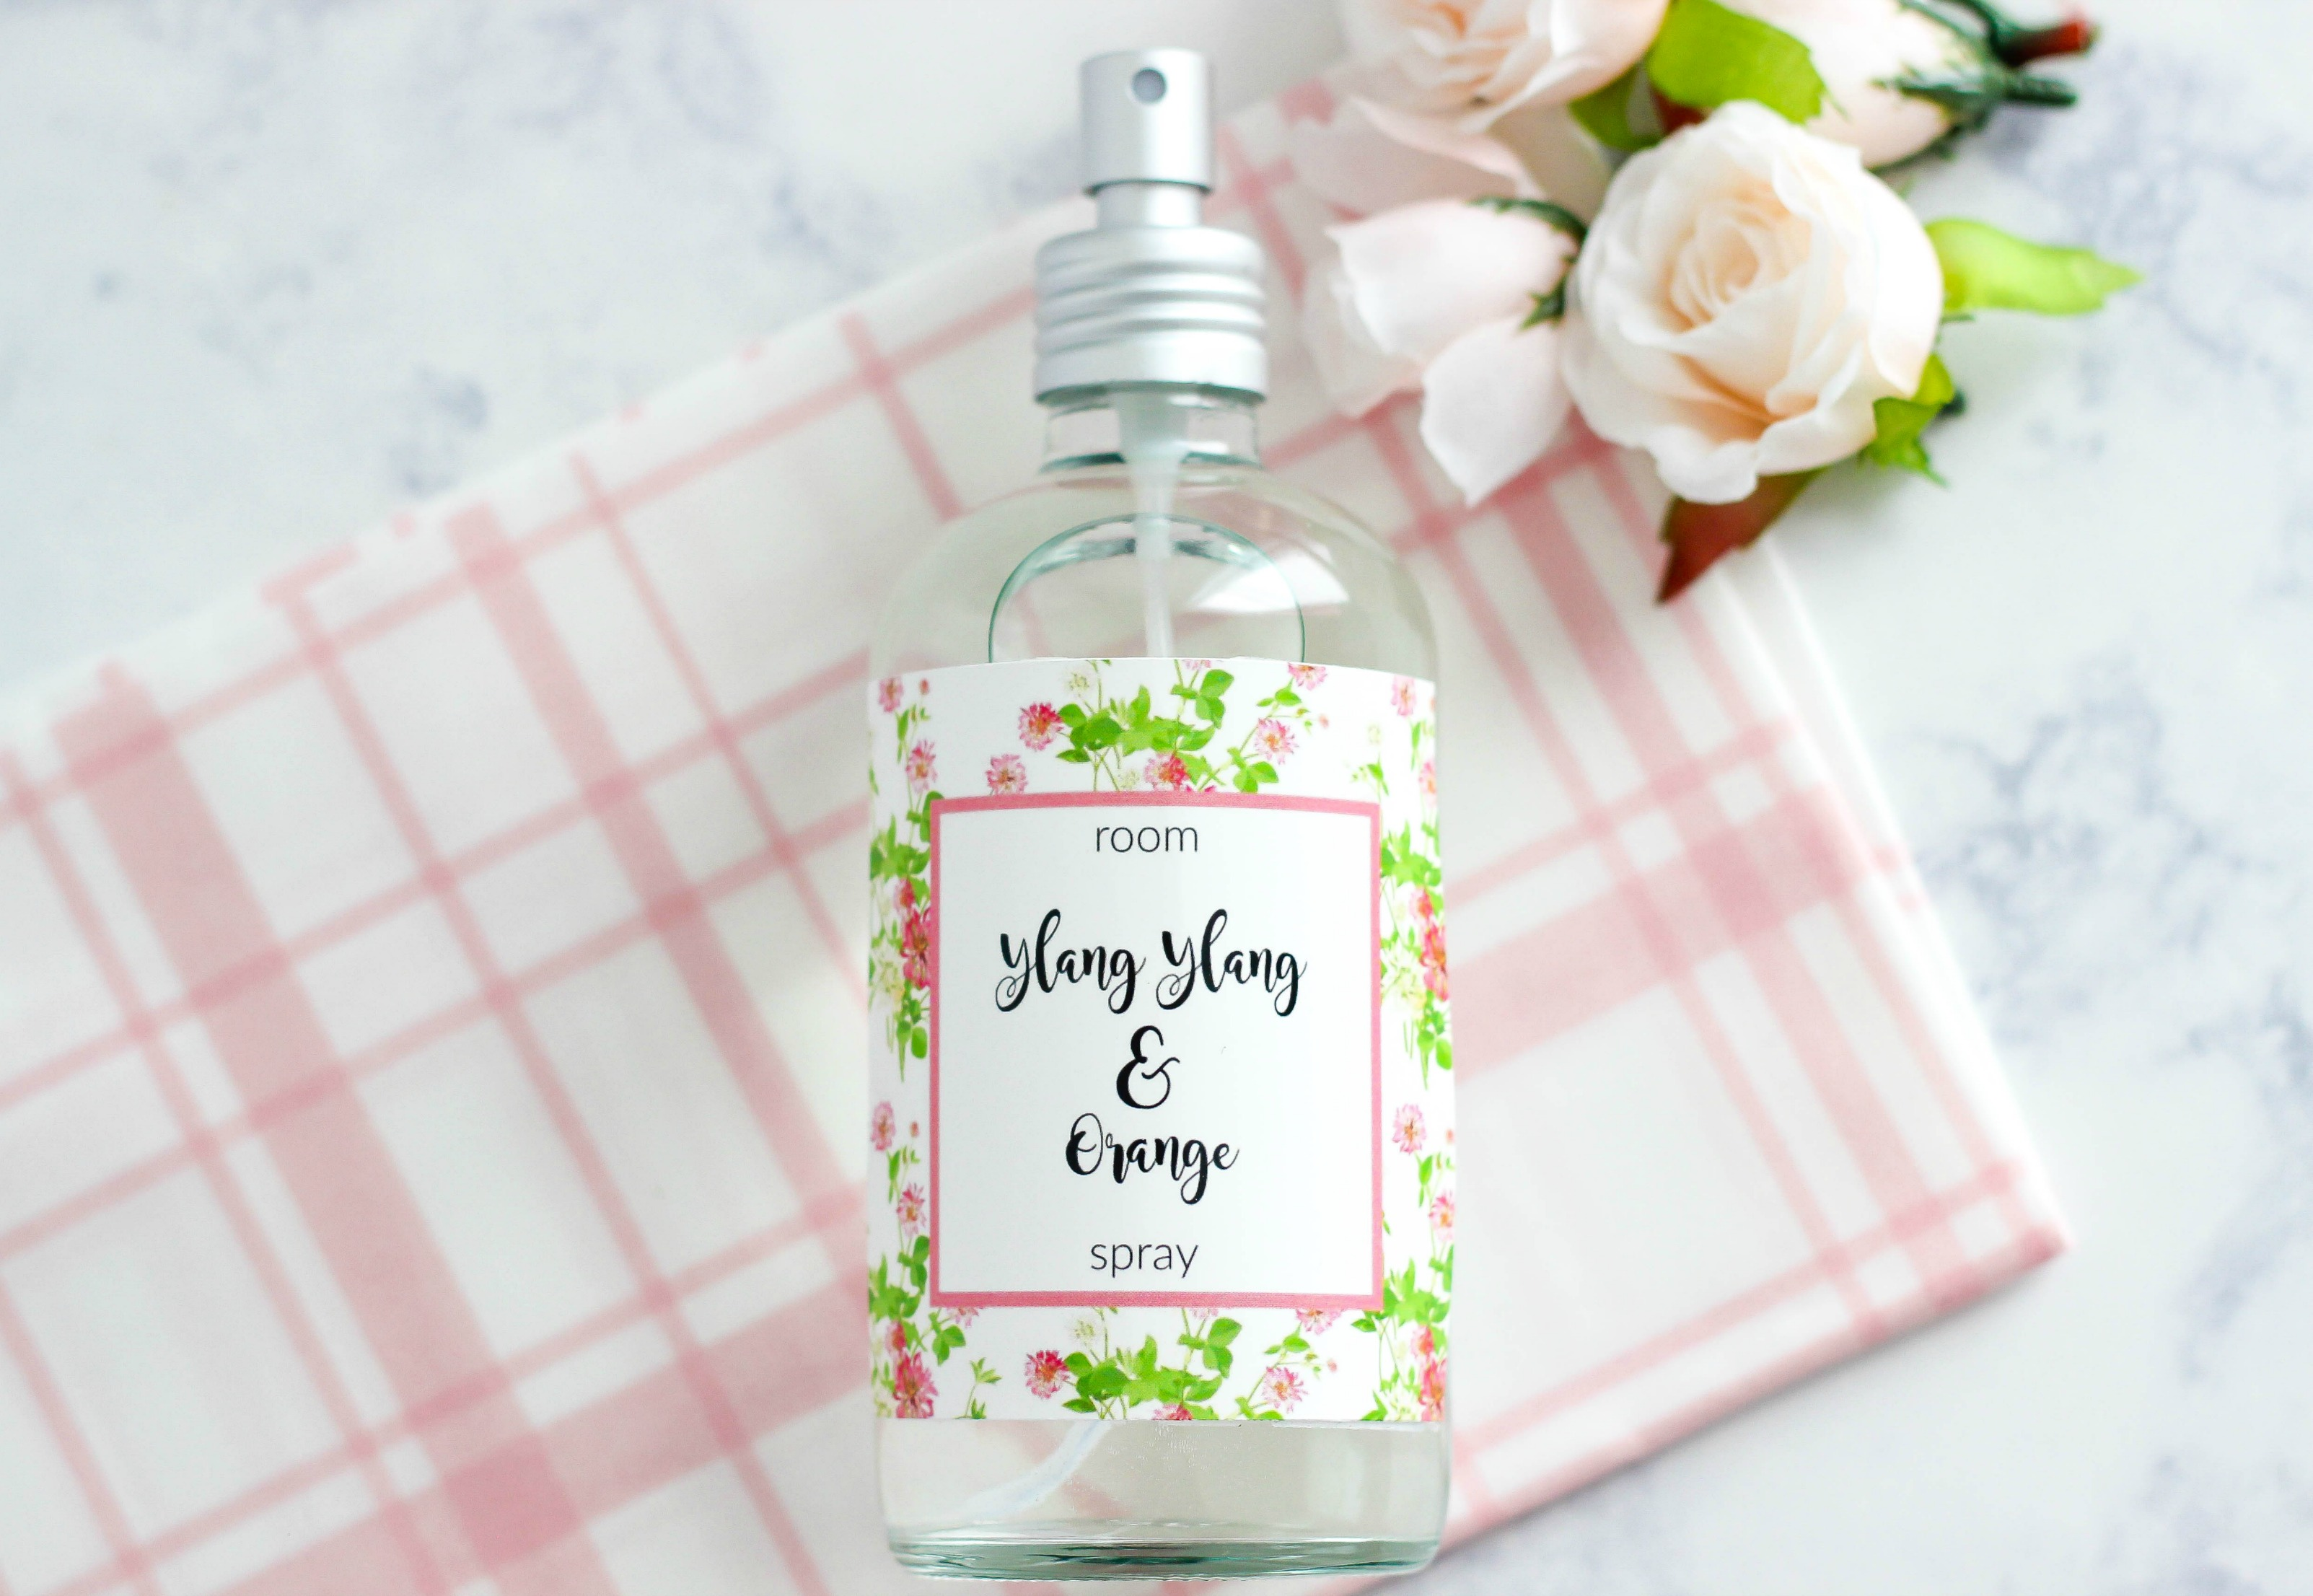 DIY ylang ylang orange room spray